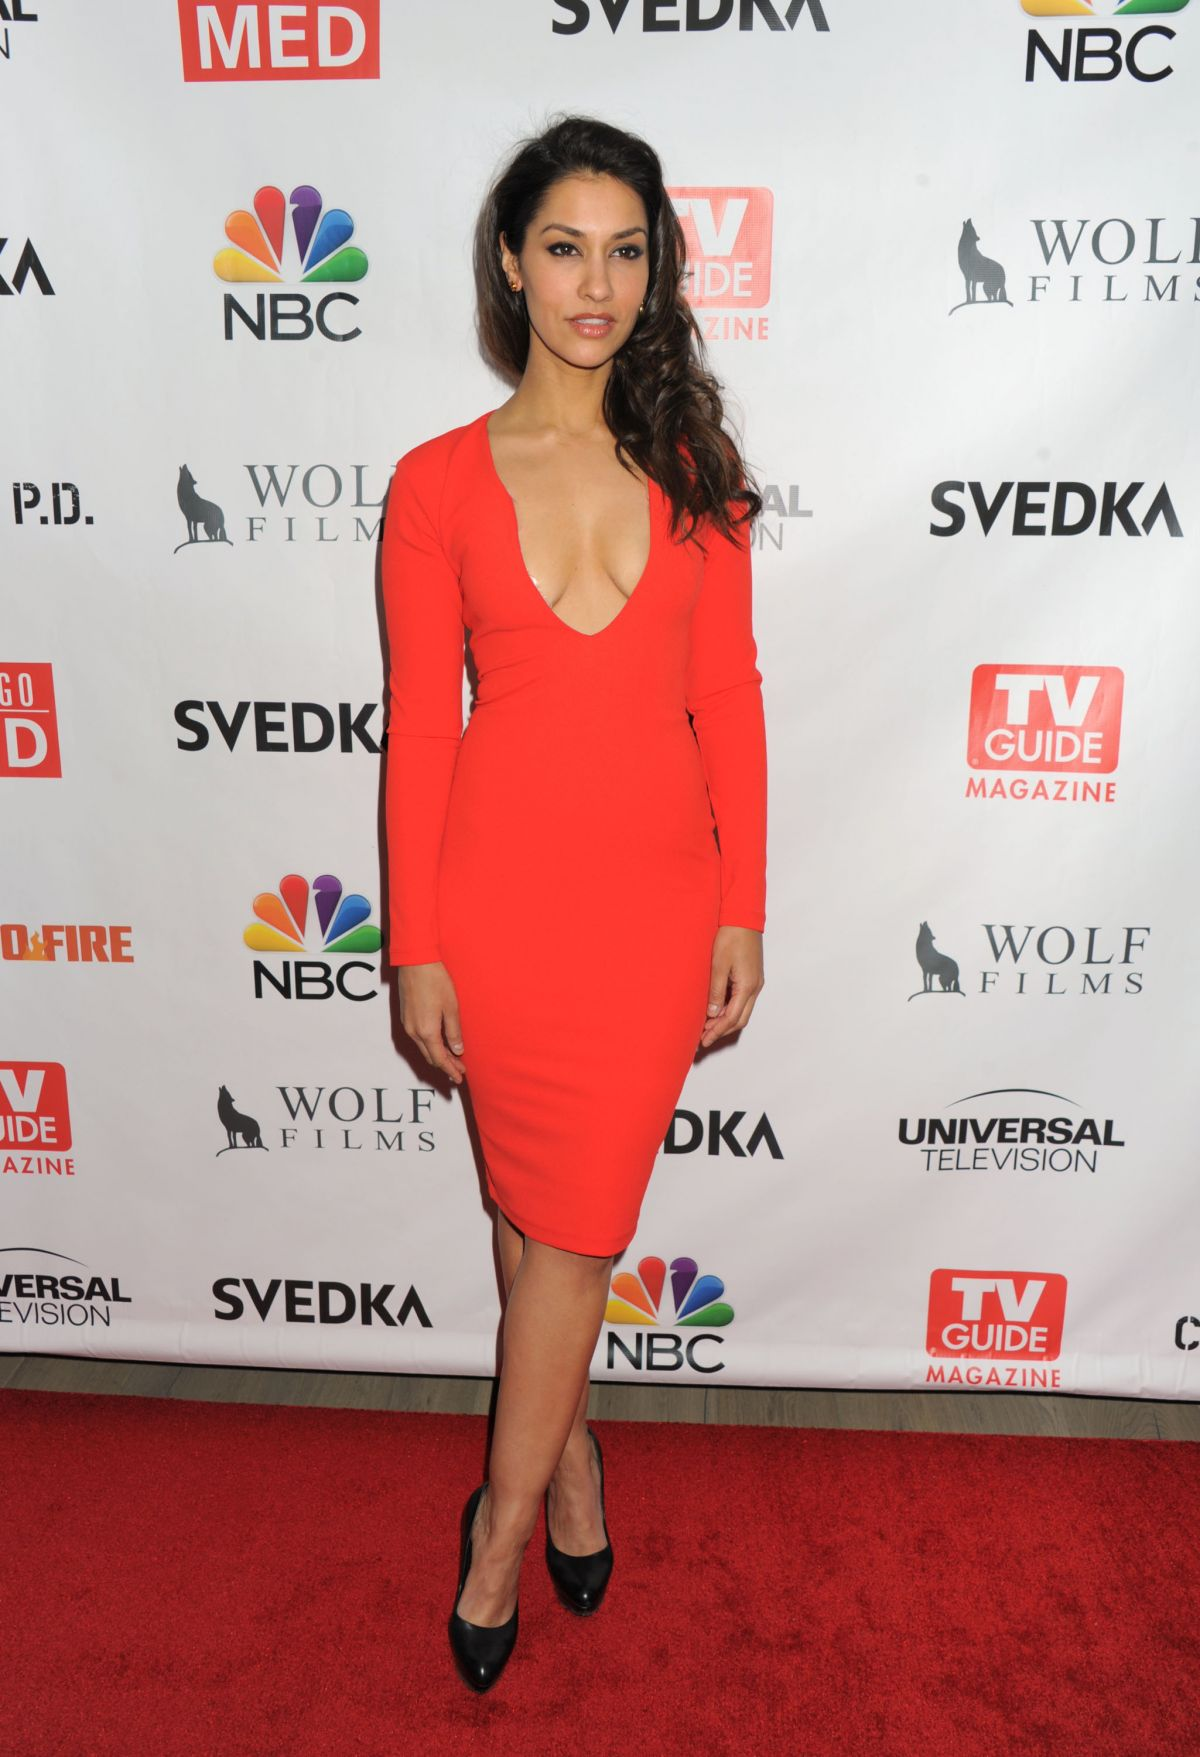 janina gavankar - photo #38